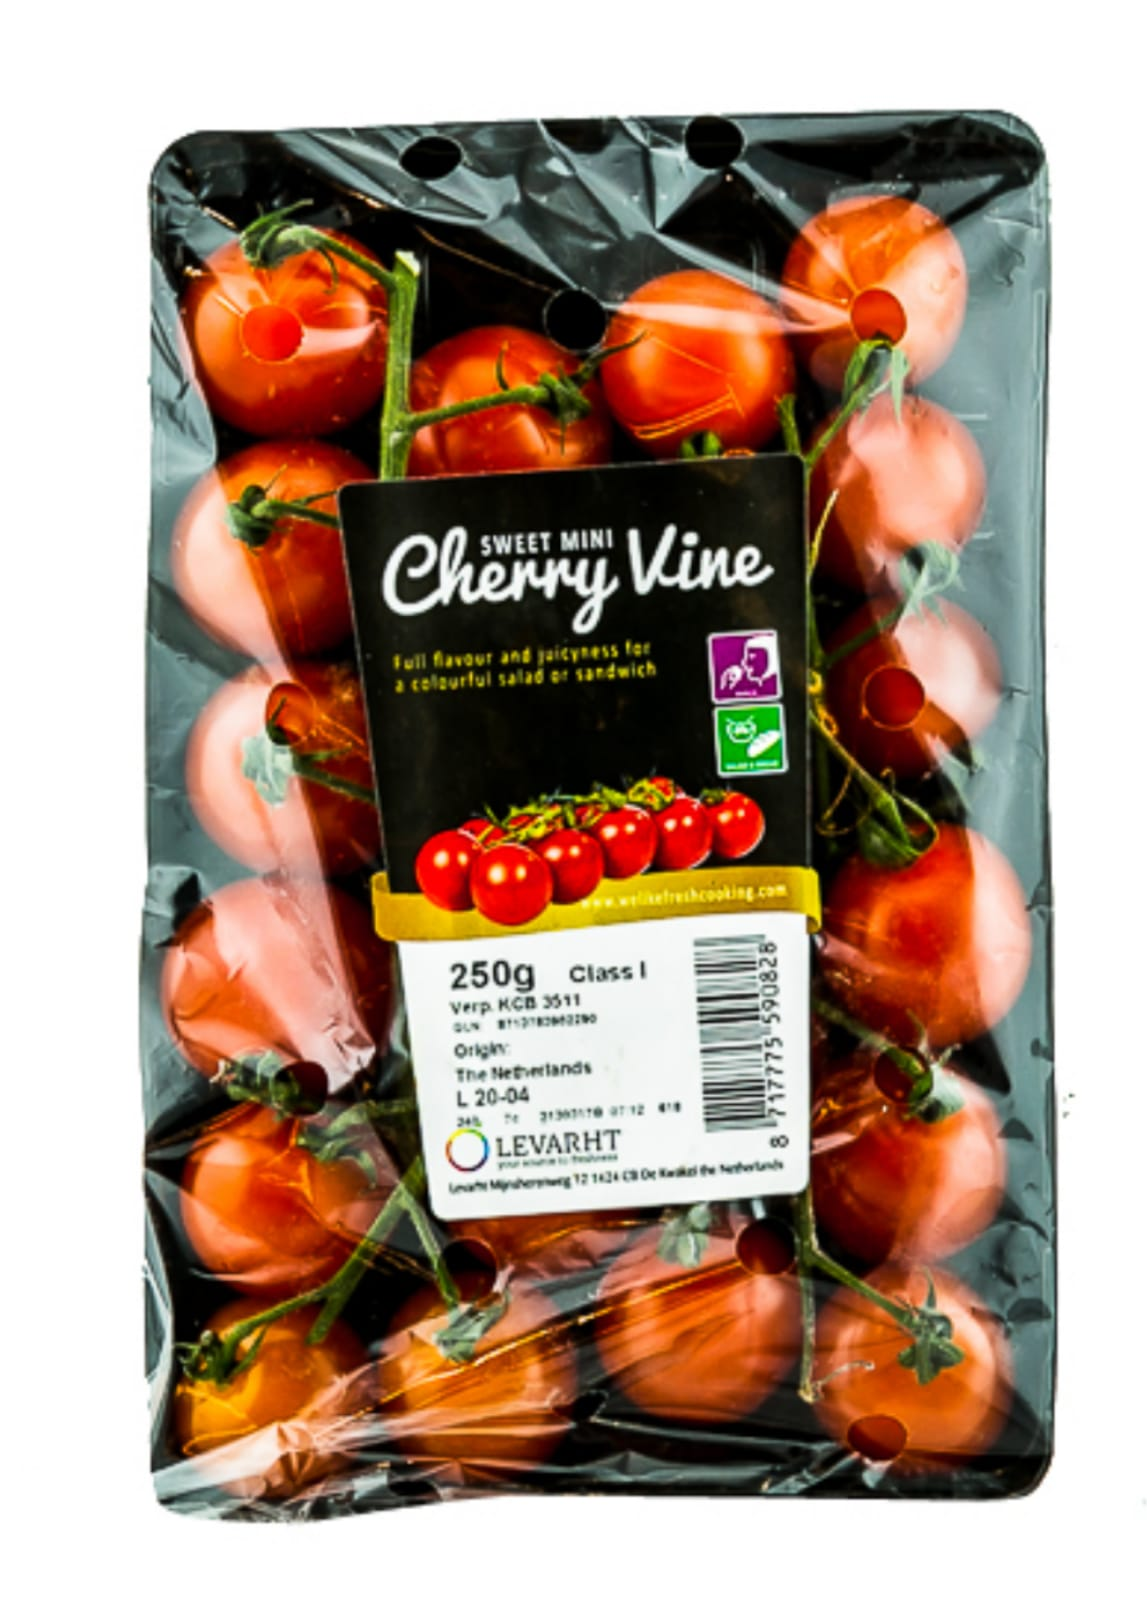 TONS Fresh | Buy Your Groceries Online Directly From The Chabra in